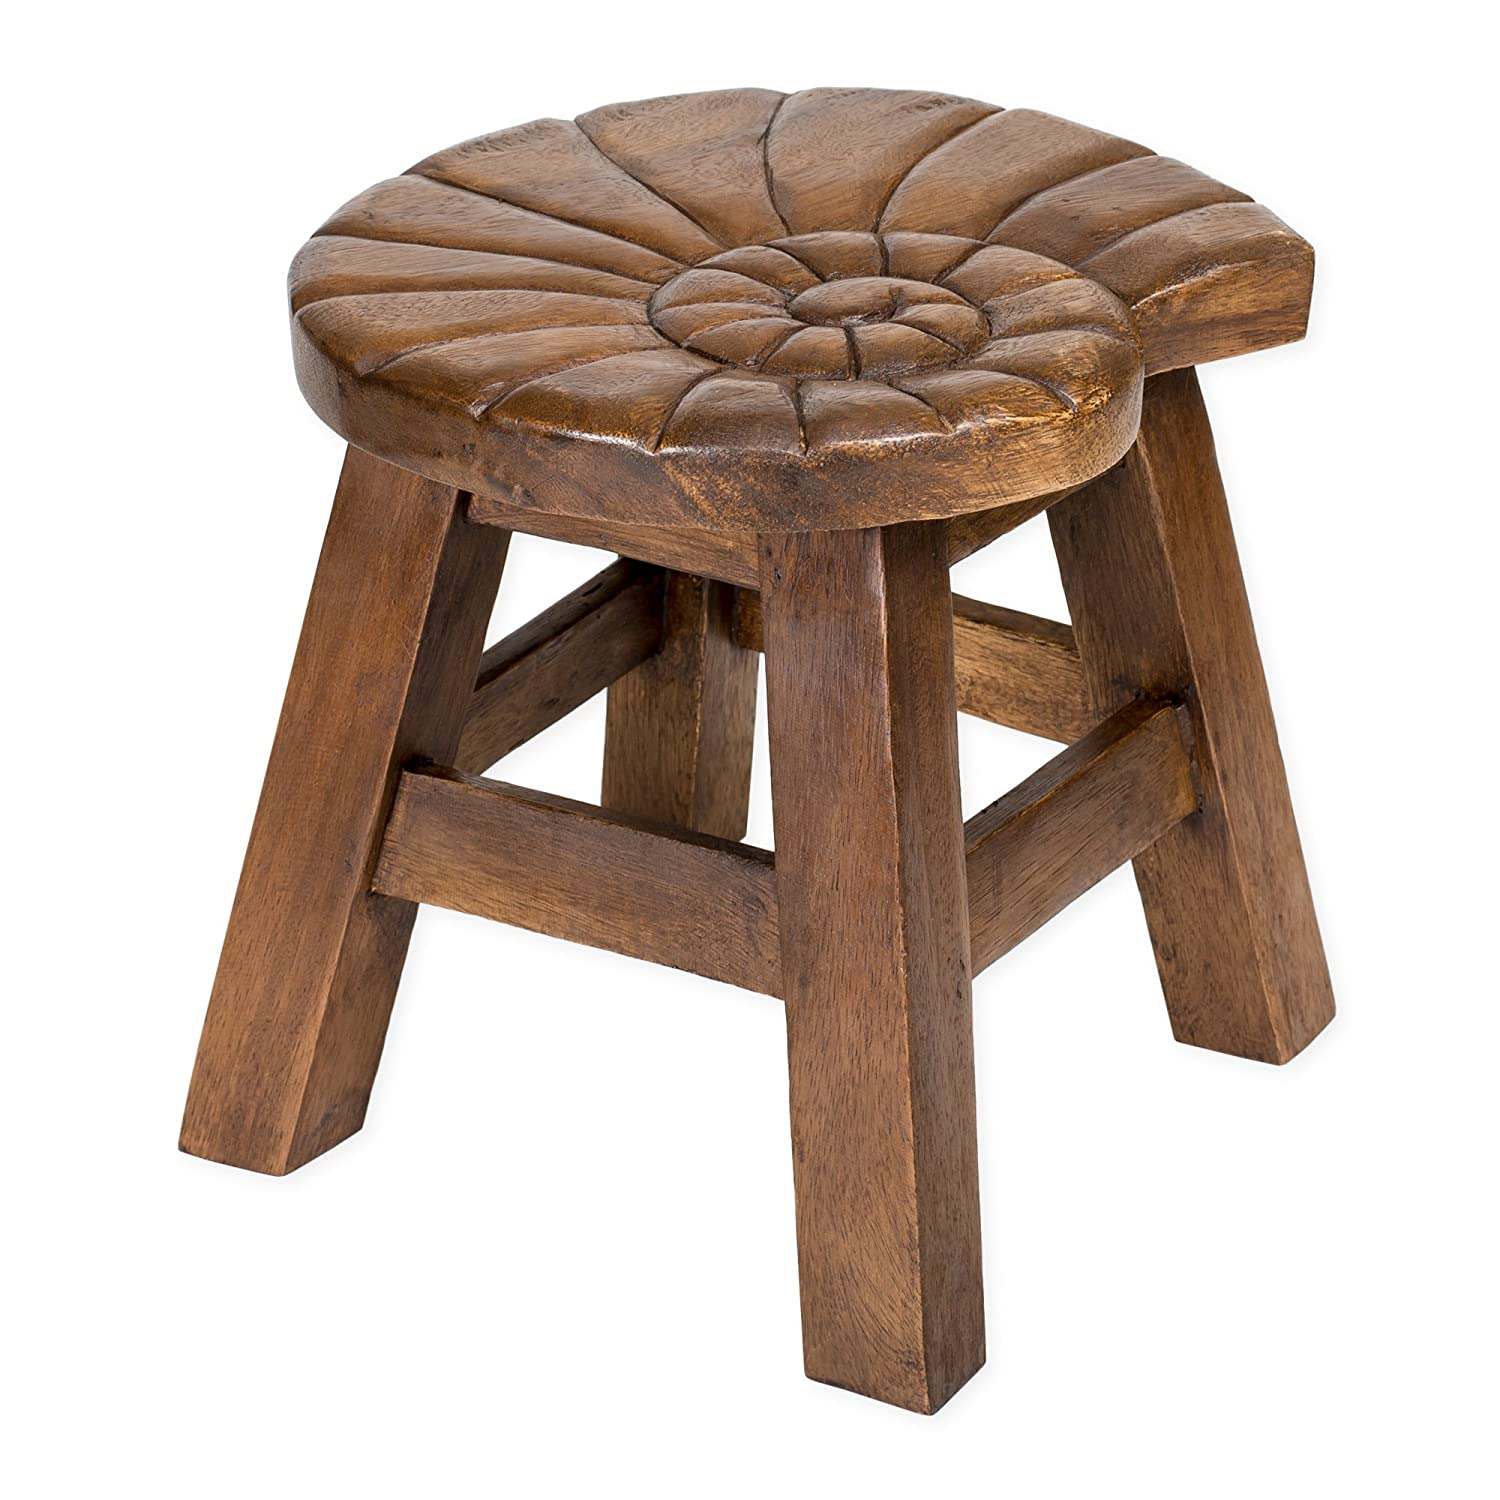 Nautilus Shell Stain Design Hand Carved Acacia Hardwood Decorative Short Stool Sea Island